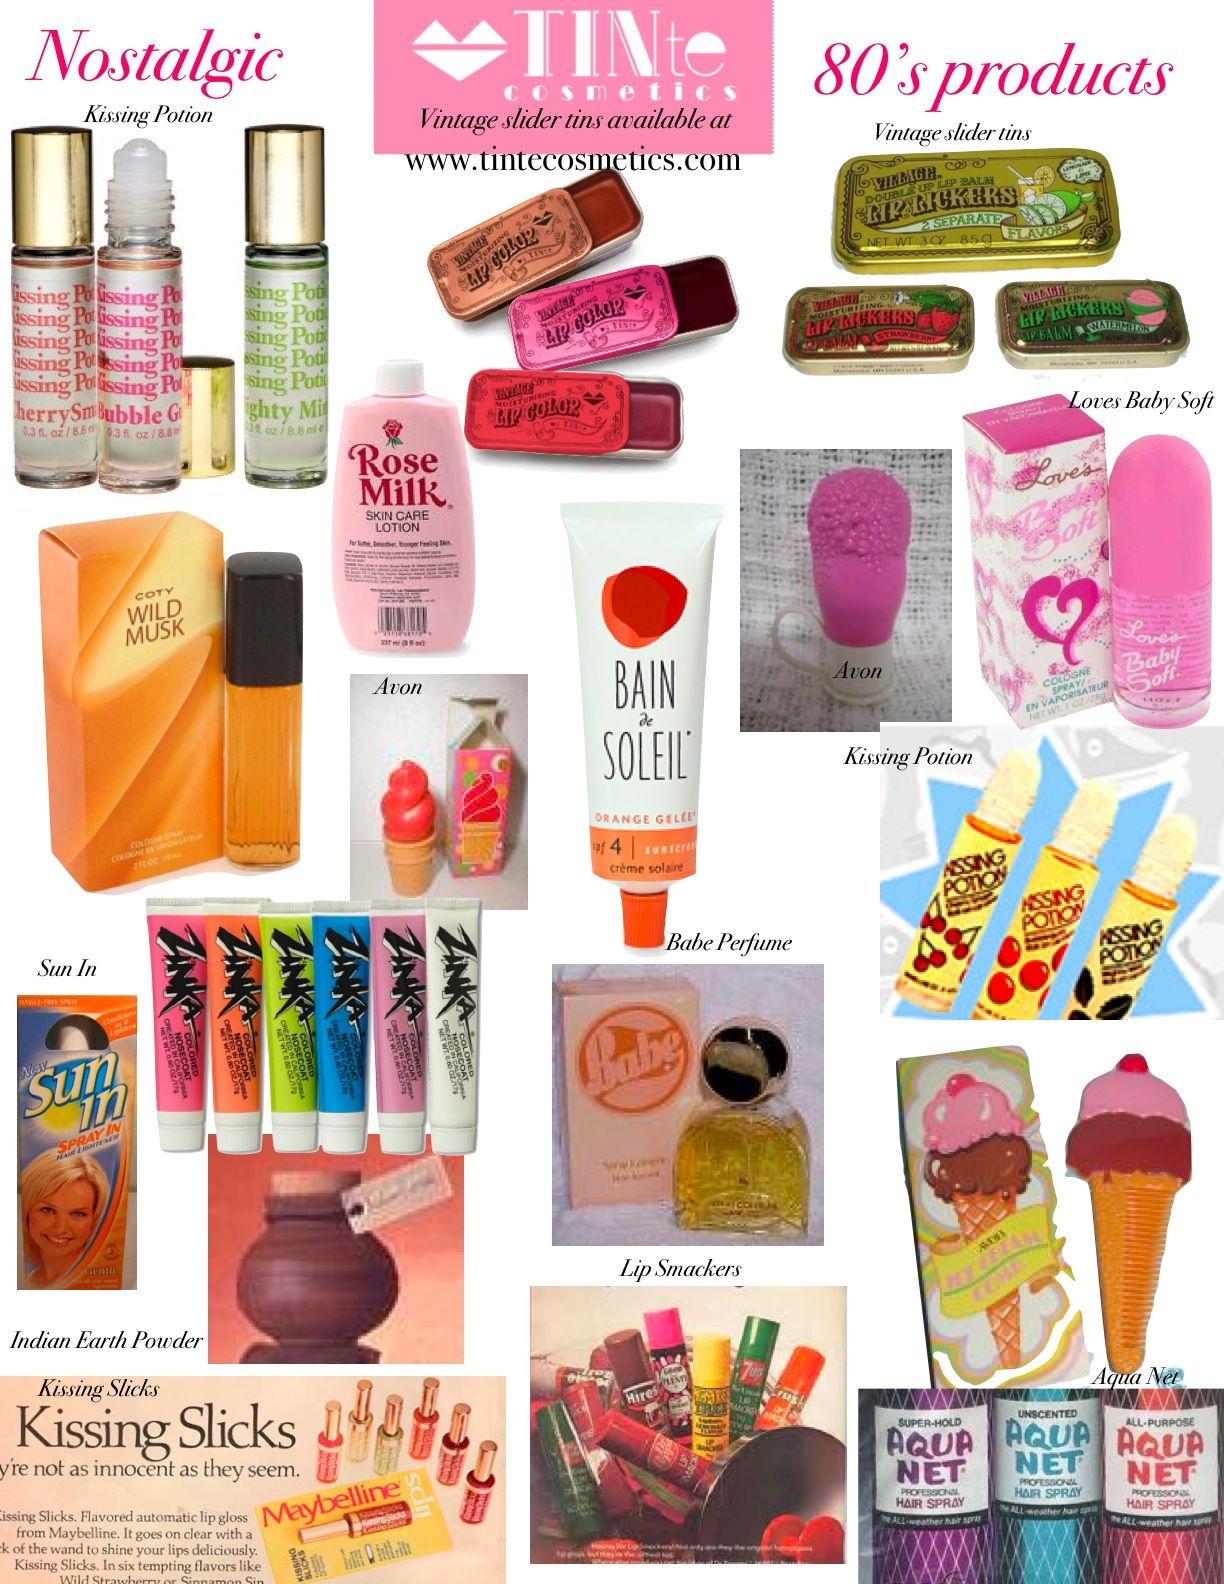 A collection of all the fun beauty products from the 80's